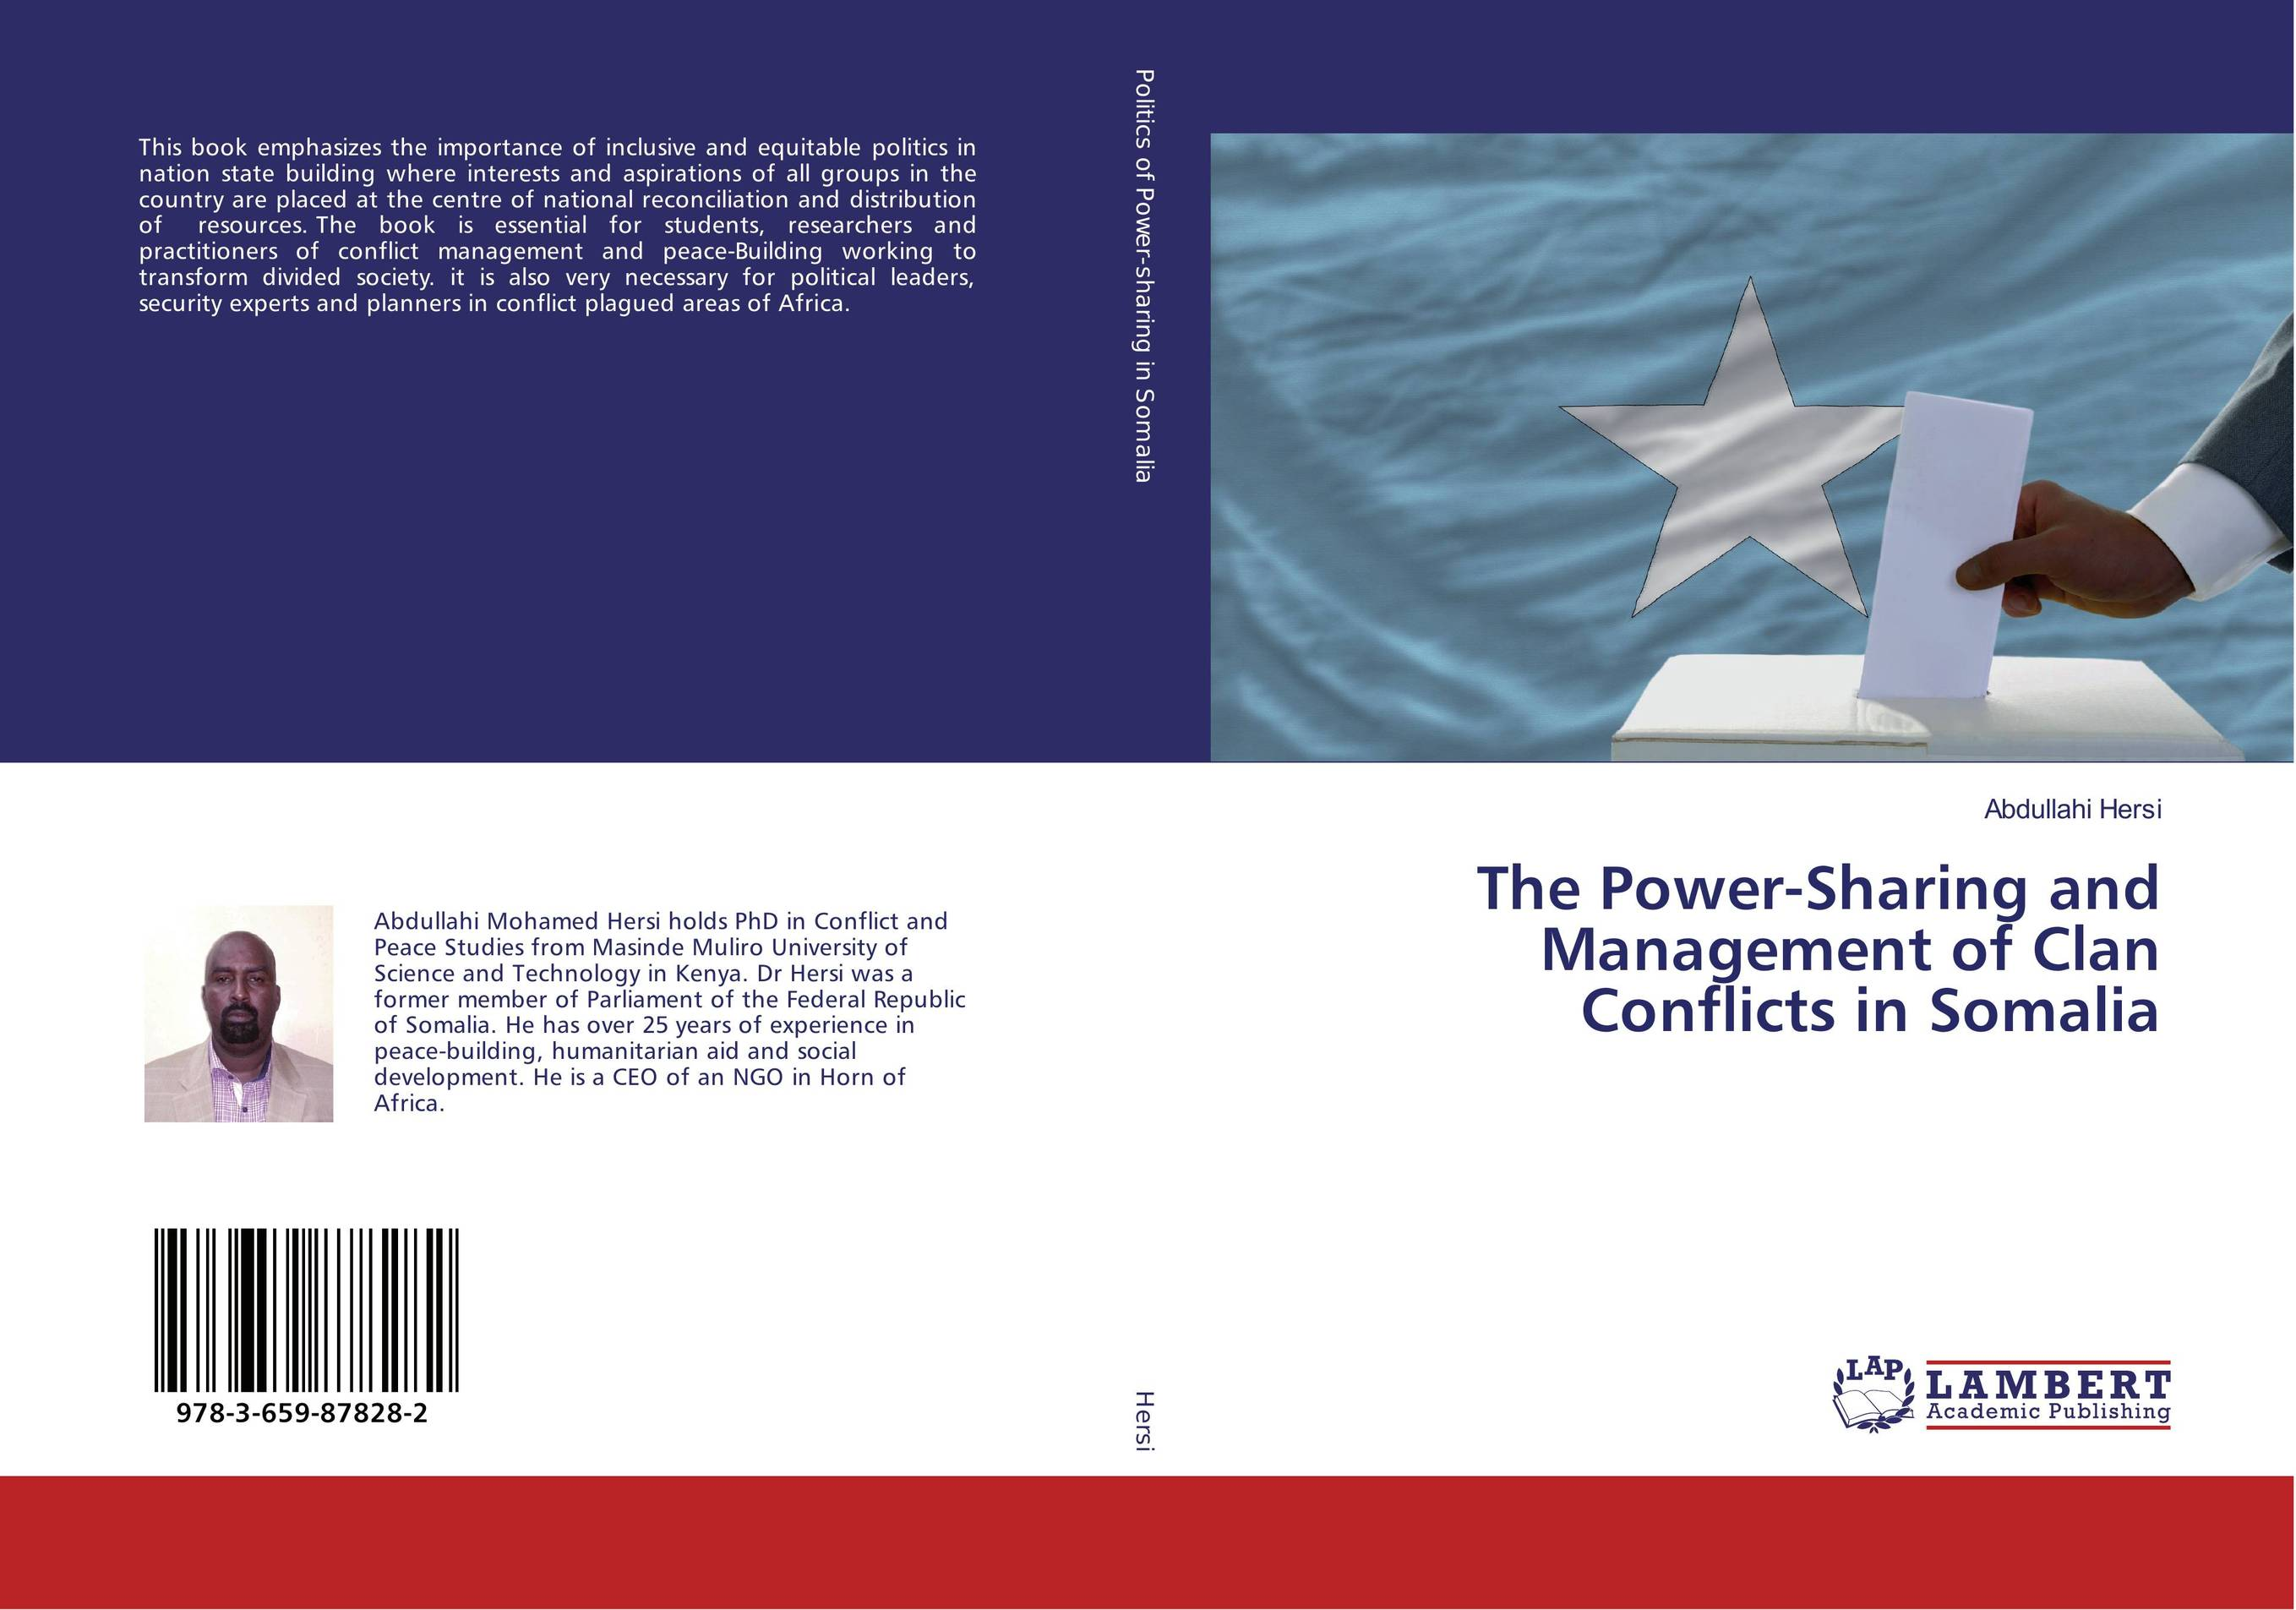 The Power-Sharing and Management of Clan Conflicts in Somalia